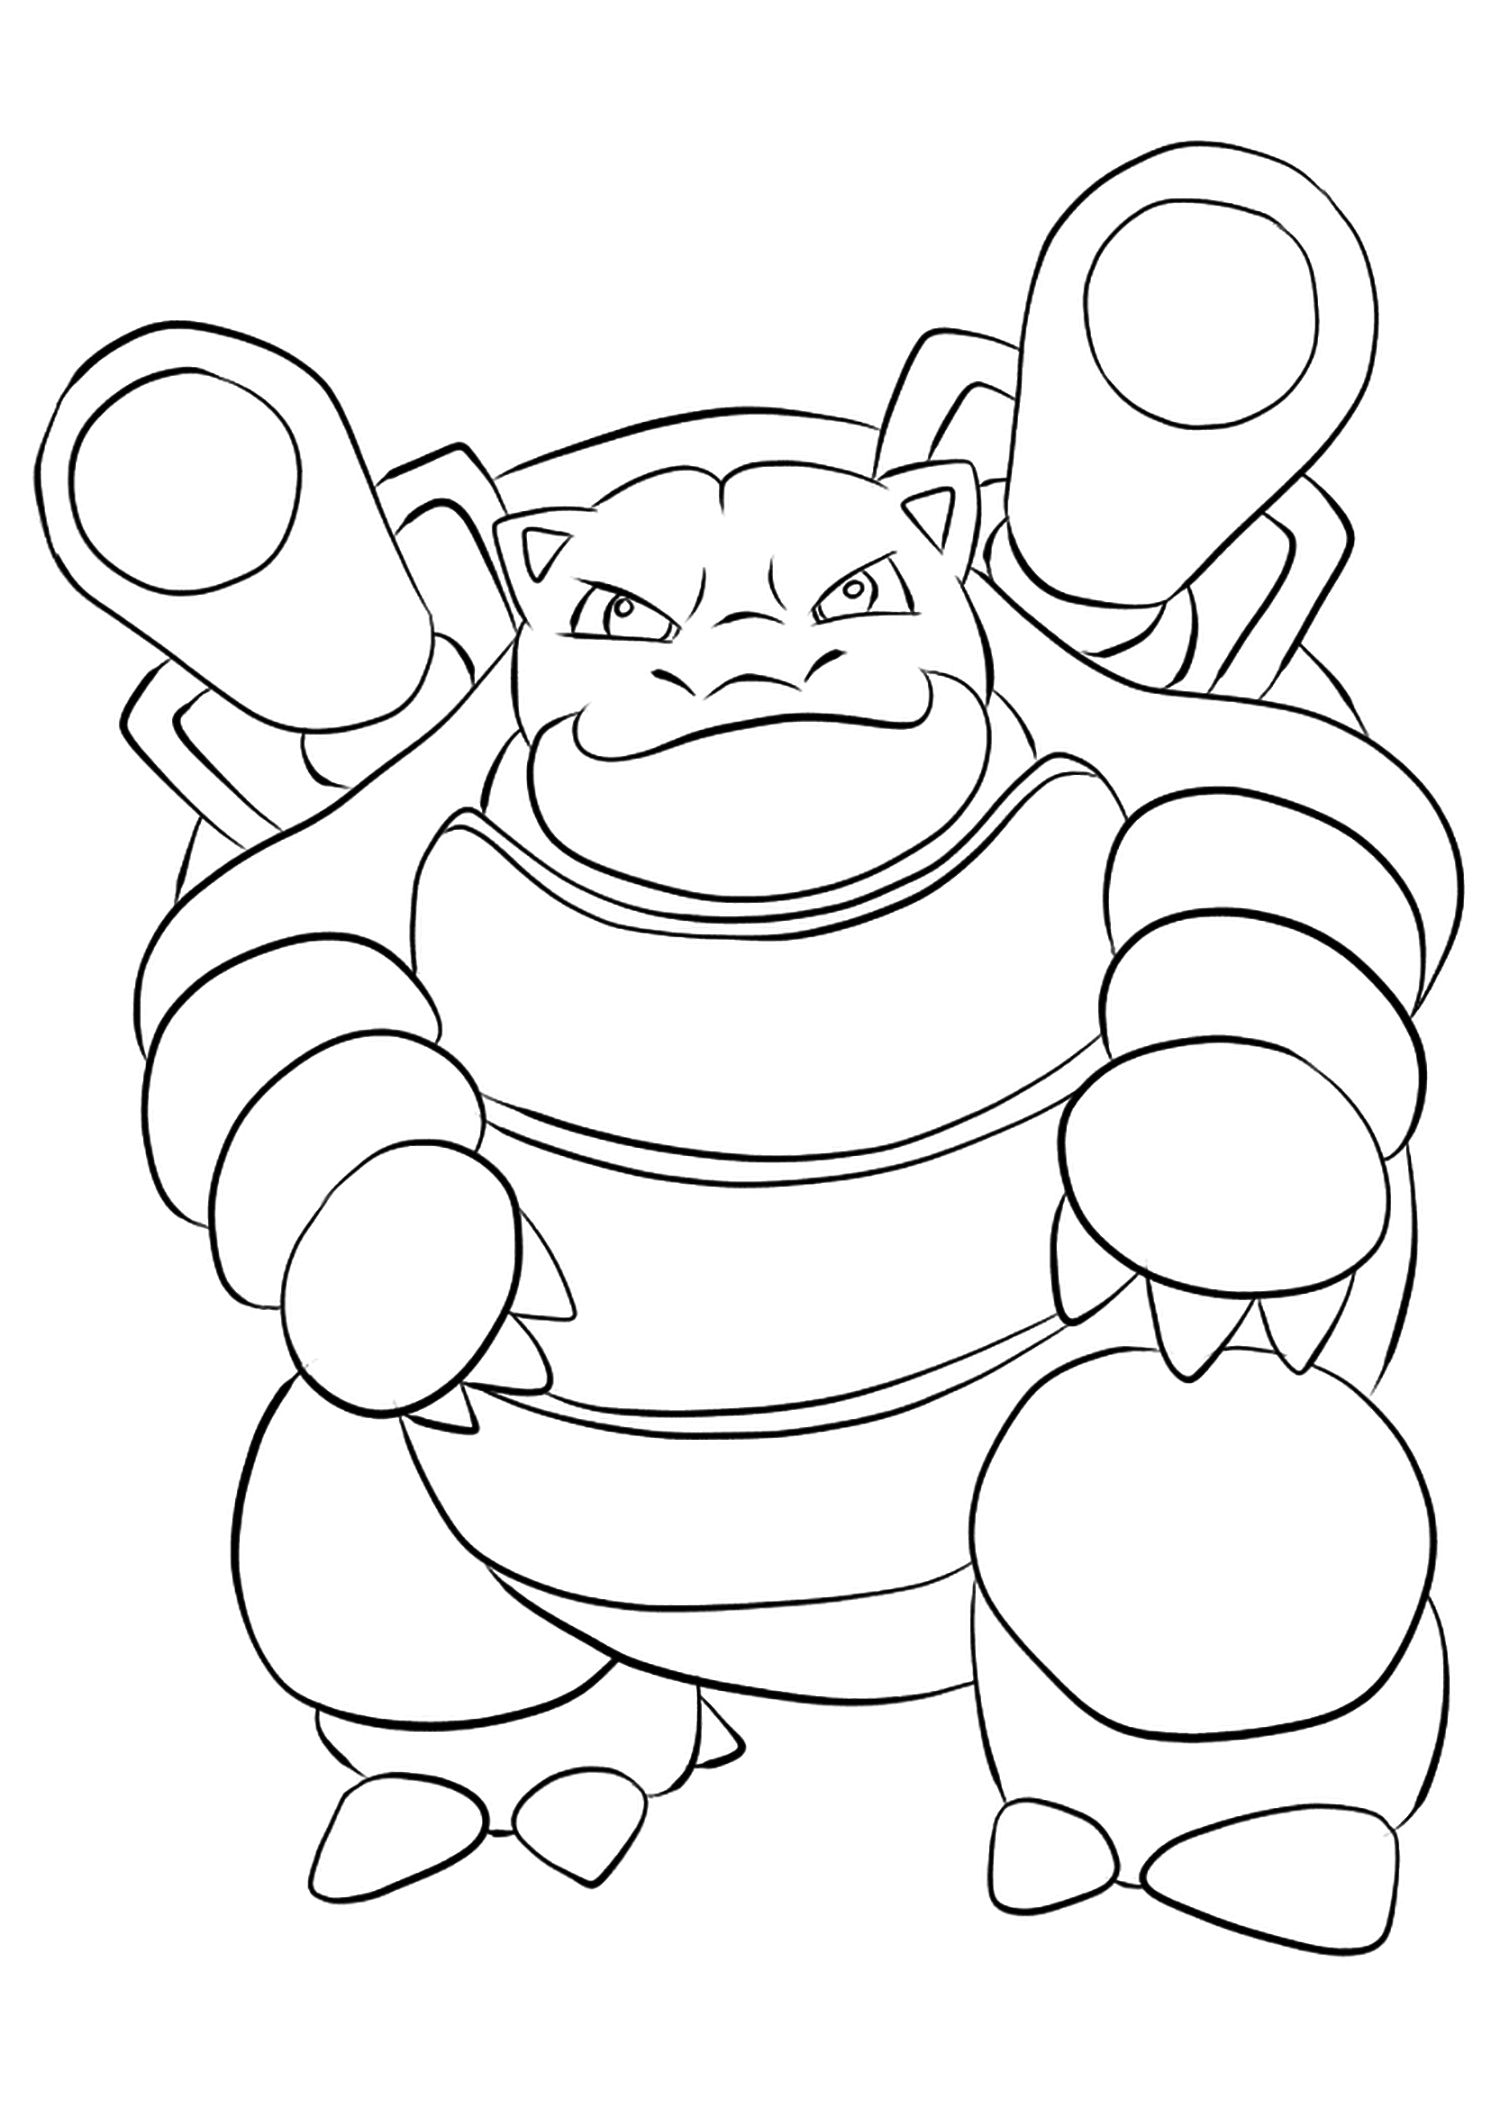 Blastoise Colouring In | 101 Coloring Pages